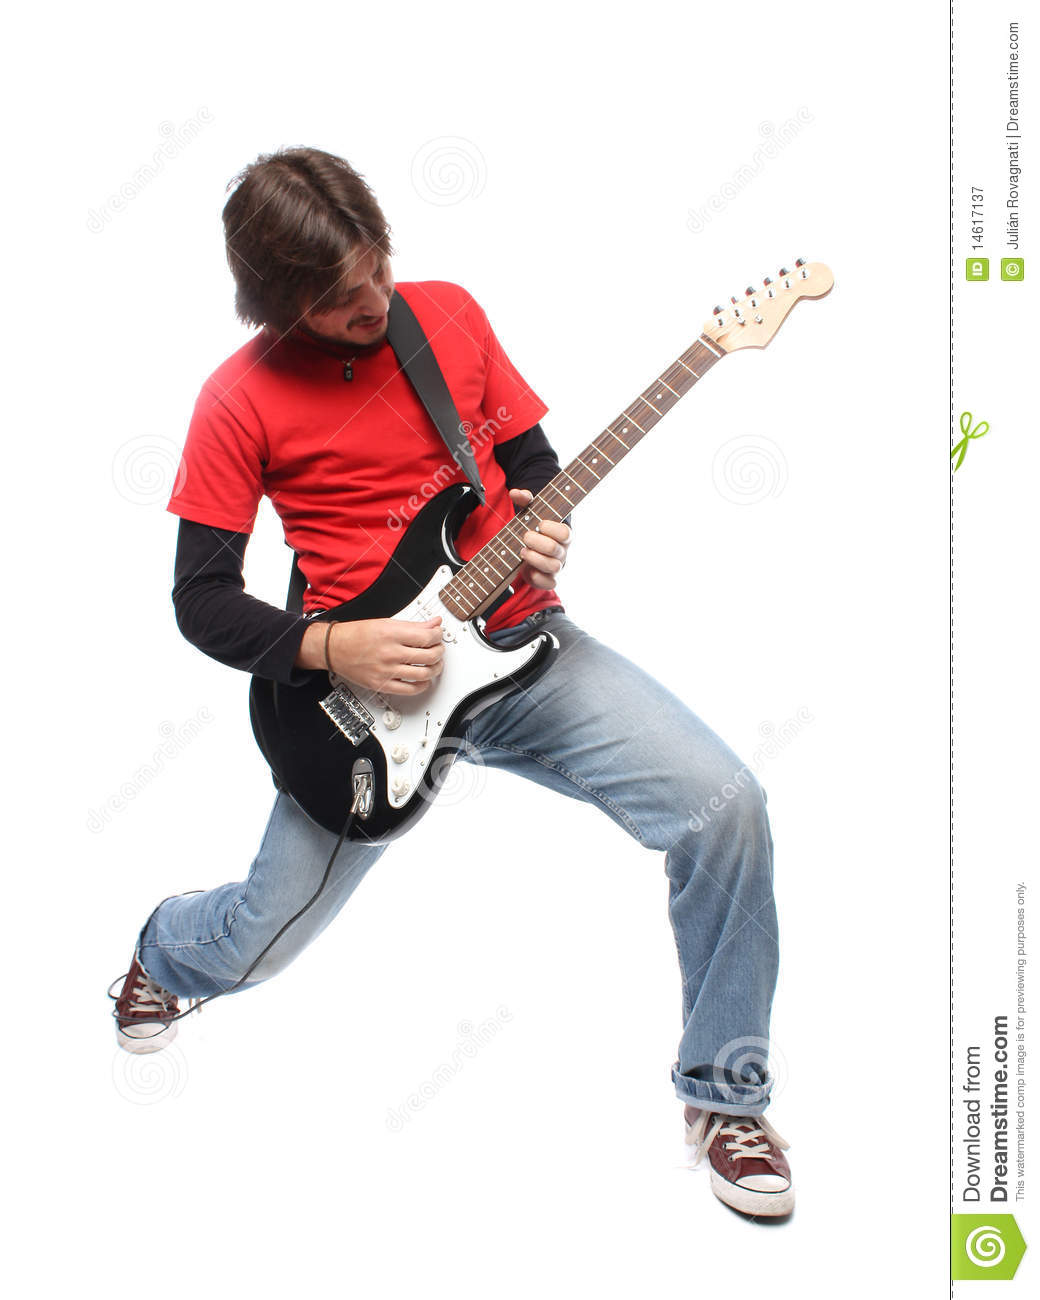 Guitar Player Royalty Free Stock Photography - Image: 14617137